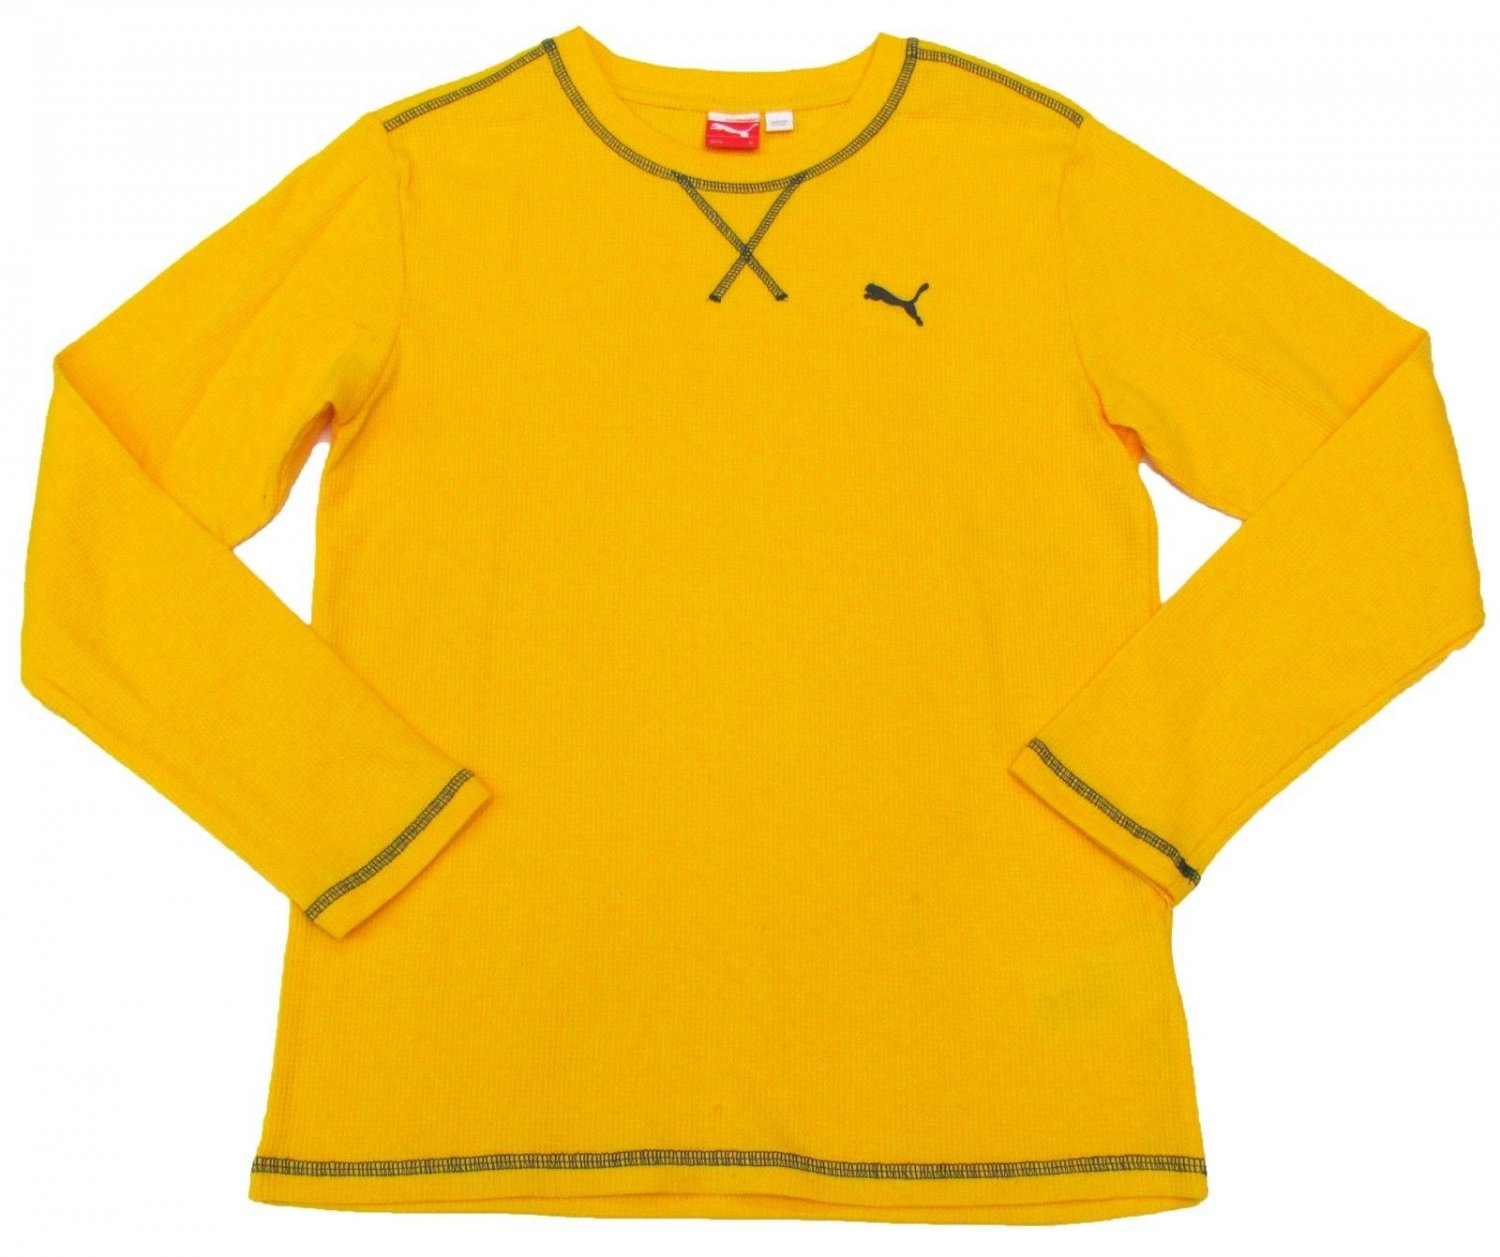 Puma Boys size 4 Yellow Thermal Shirt with Contrasting Stitching Long Sleeve Kids New